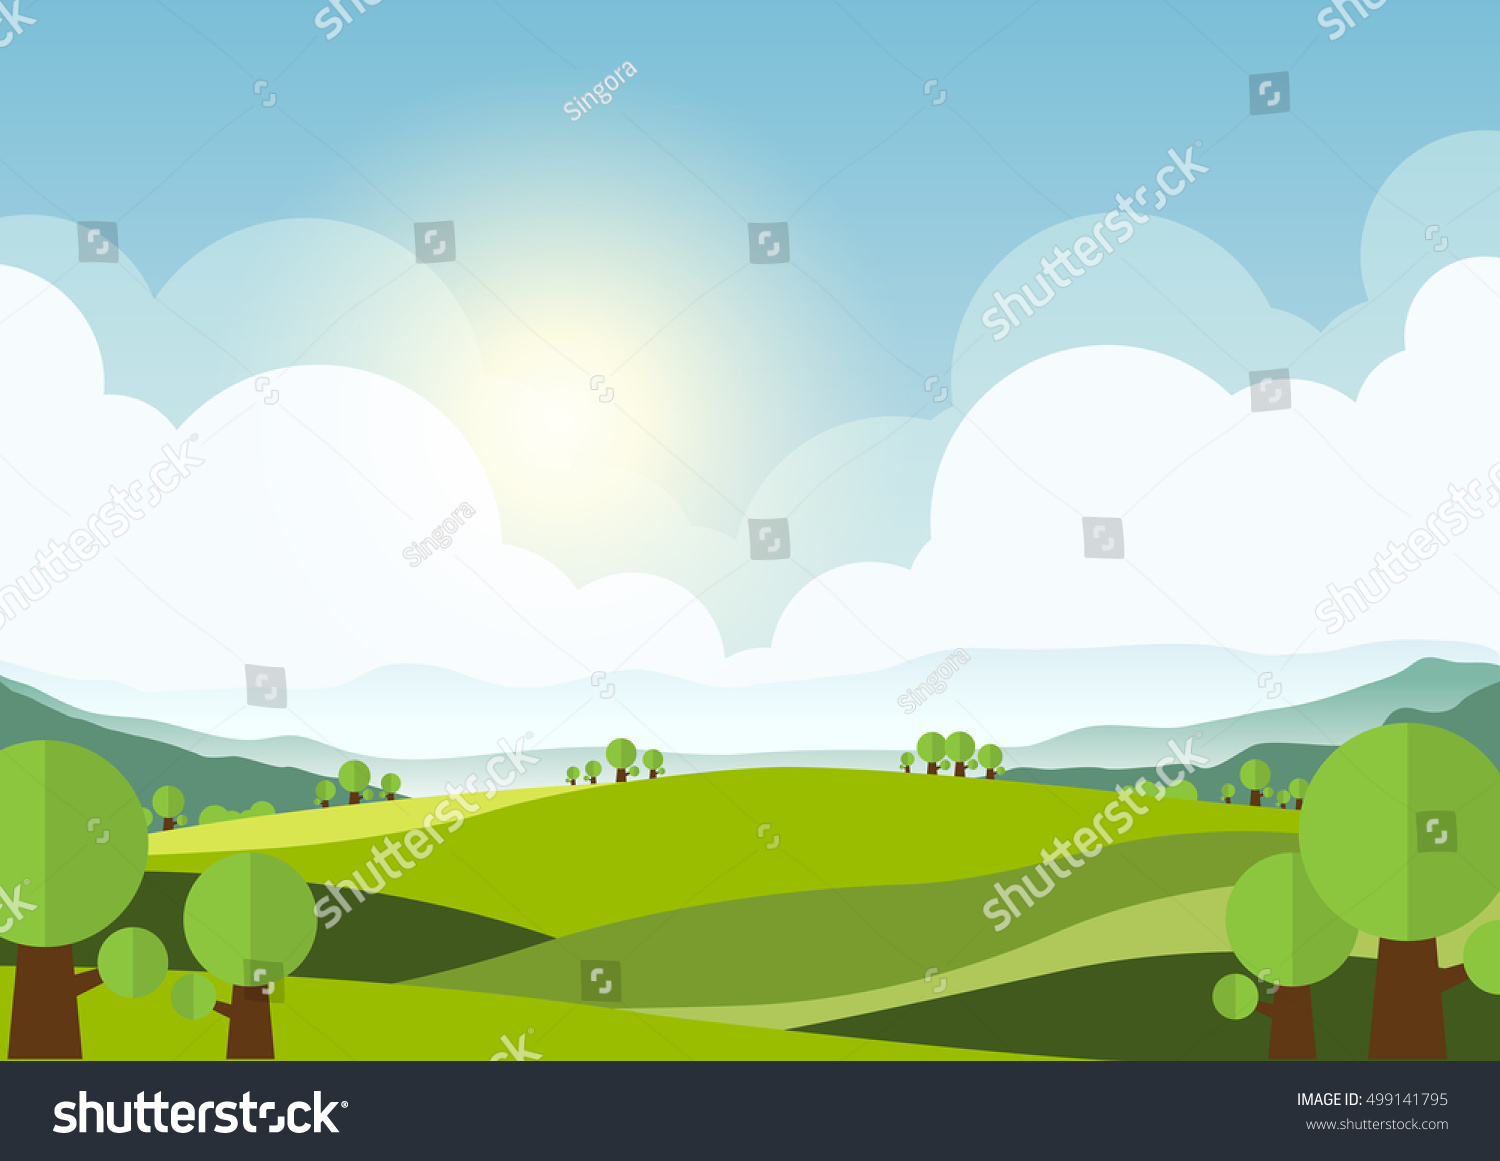 Nature Landscape Background Cuted Flat Design Stock Vector Royalty Free 499141795